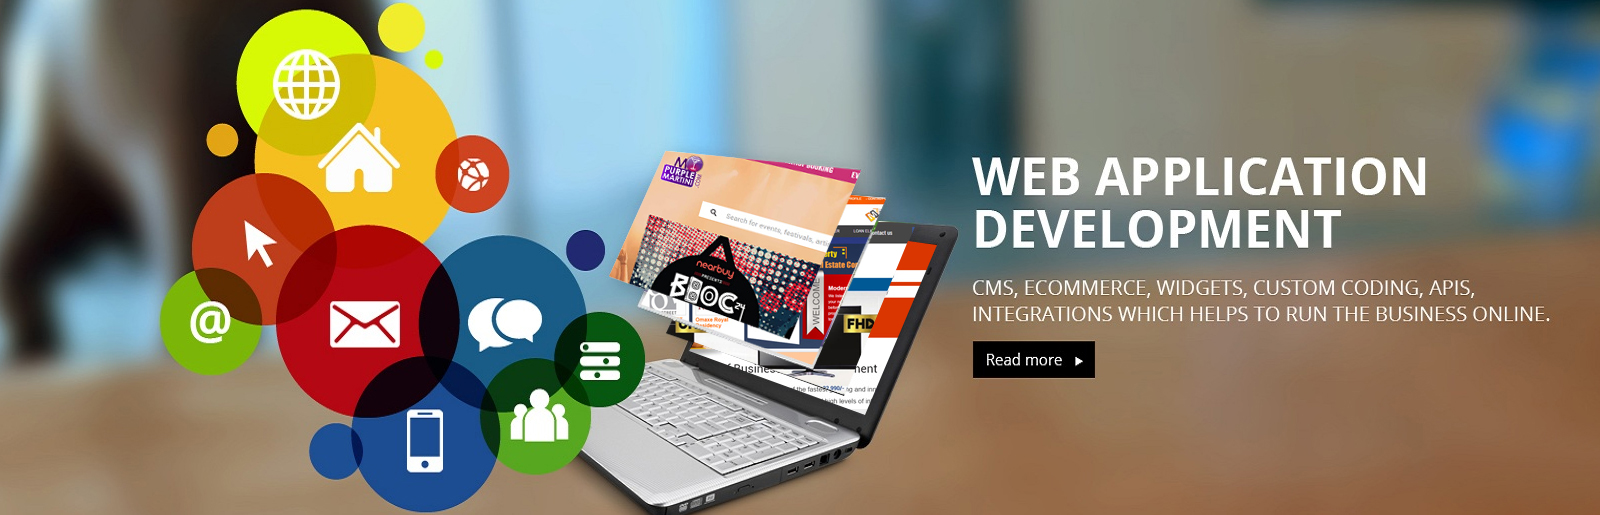 Captivating Web Design Company Name Ideas Name Ideas For A Graphic Design